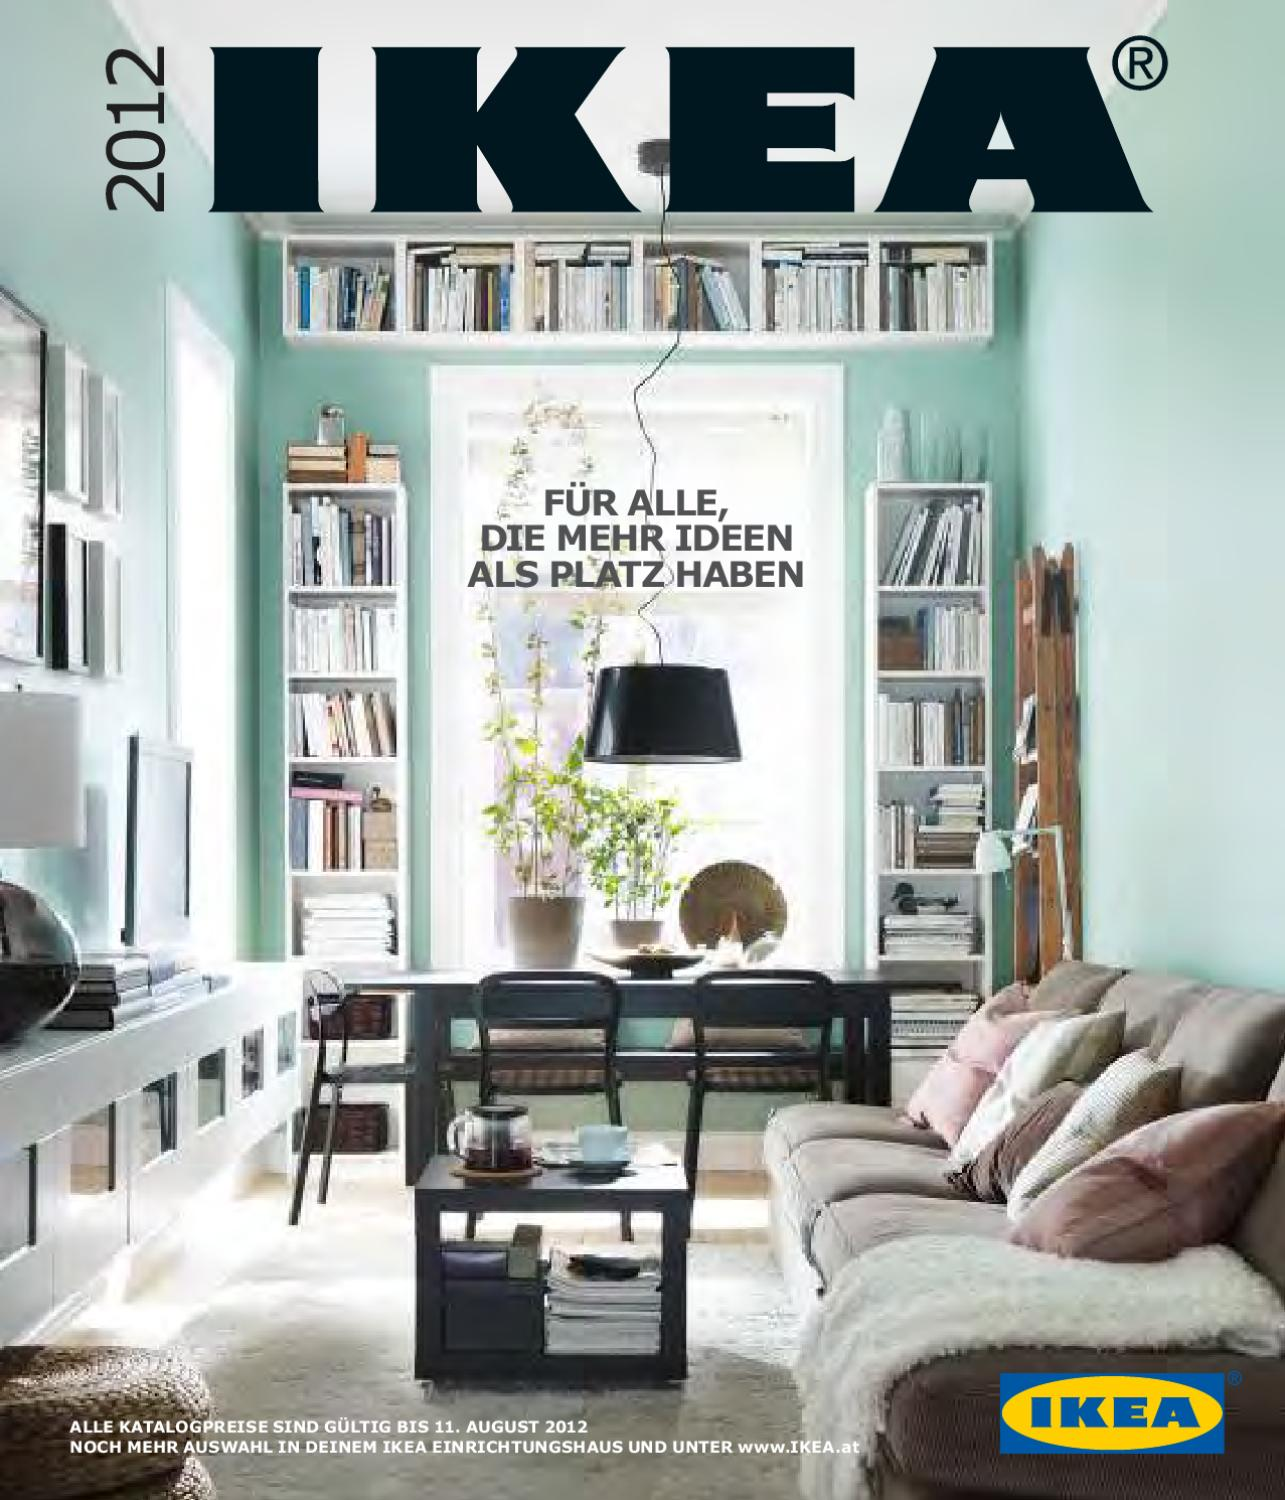 Ikea Spiegel Wellenform Ikea Katalog 20 11 11 08 2012 By Aktionsfinder Gmbh Issuu